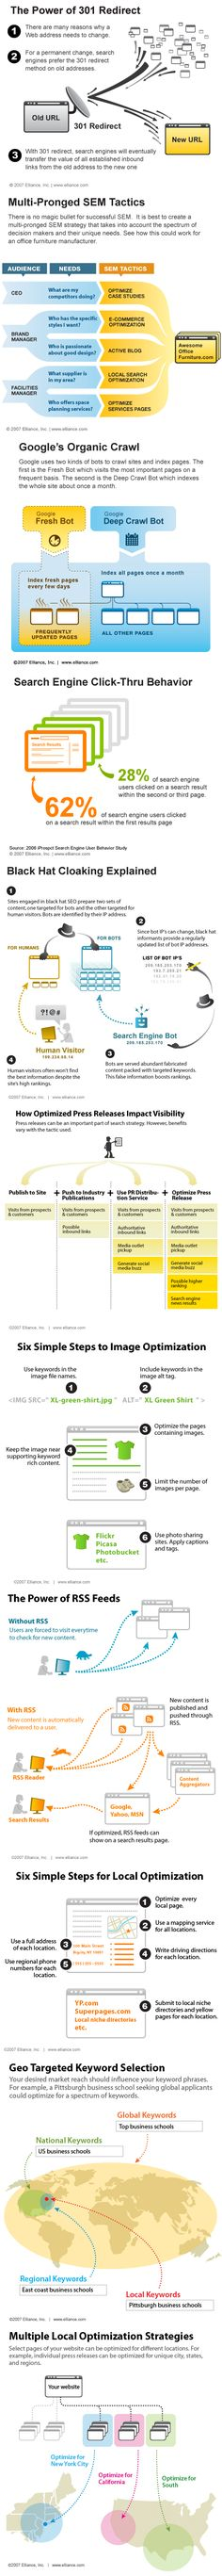 SEO, 301 redirects ( ex for redesign where urls change) local, regional or ww.  Explained - Infographic